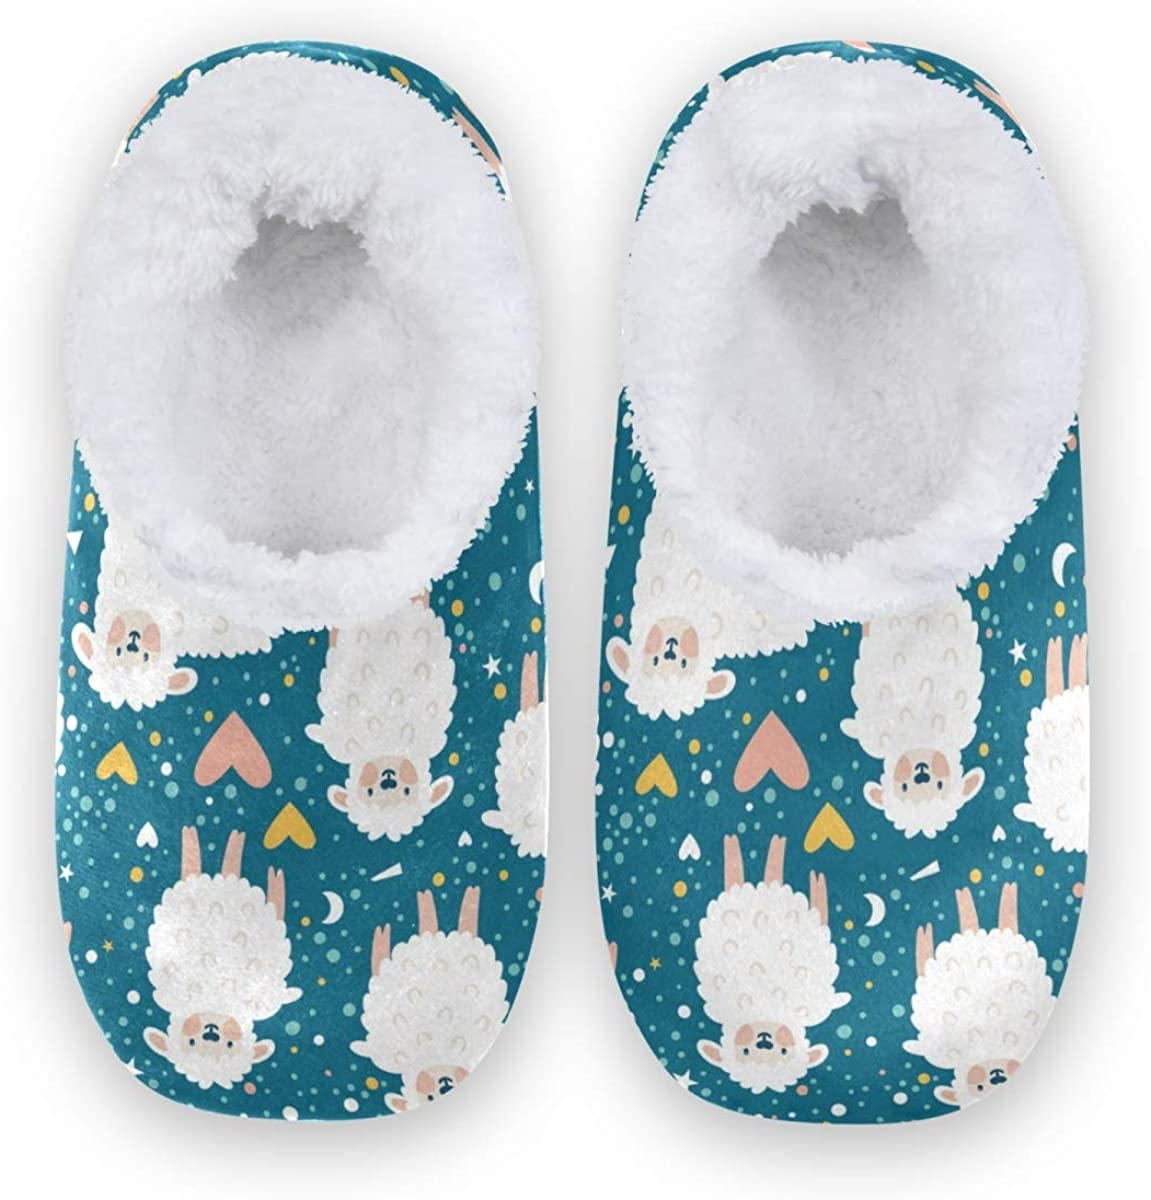 AGONA Sale SALE% OFF Blue Cute Sheep Animal Max 54% OFF Heart Dots Slippers House Colorful